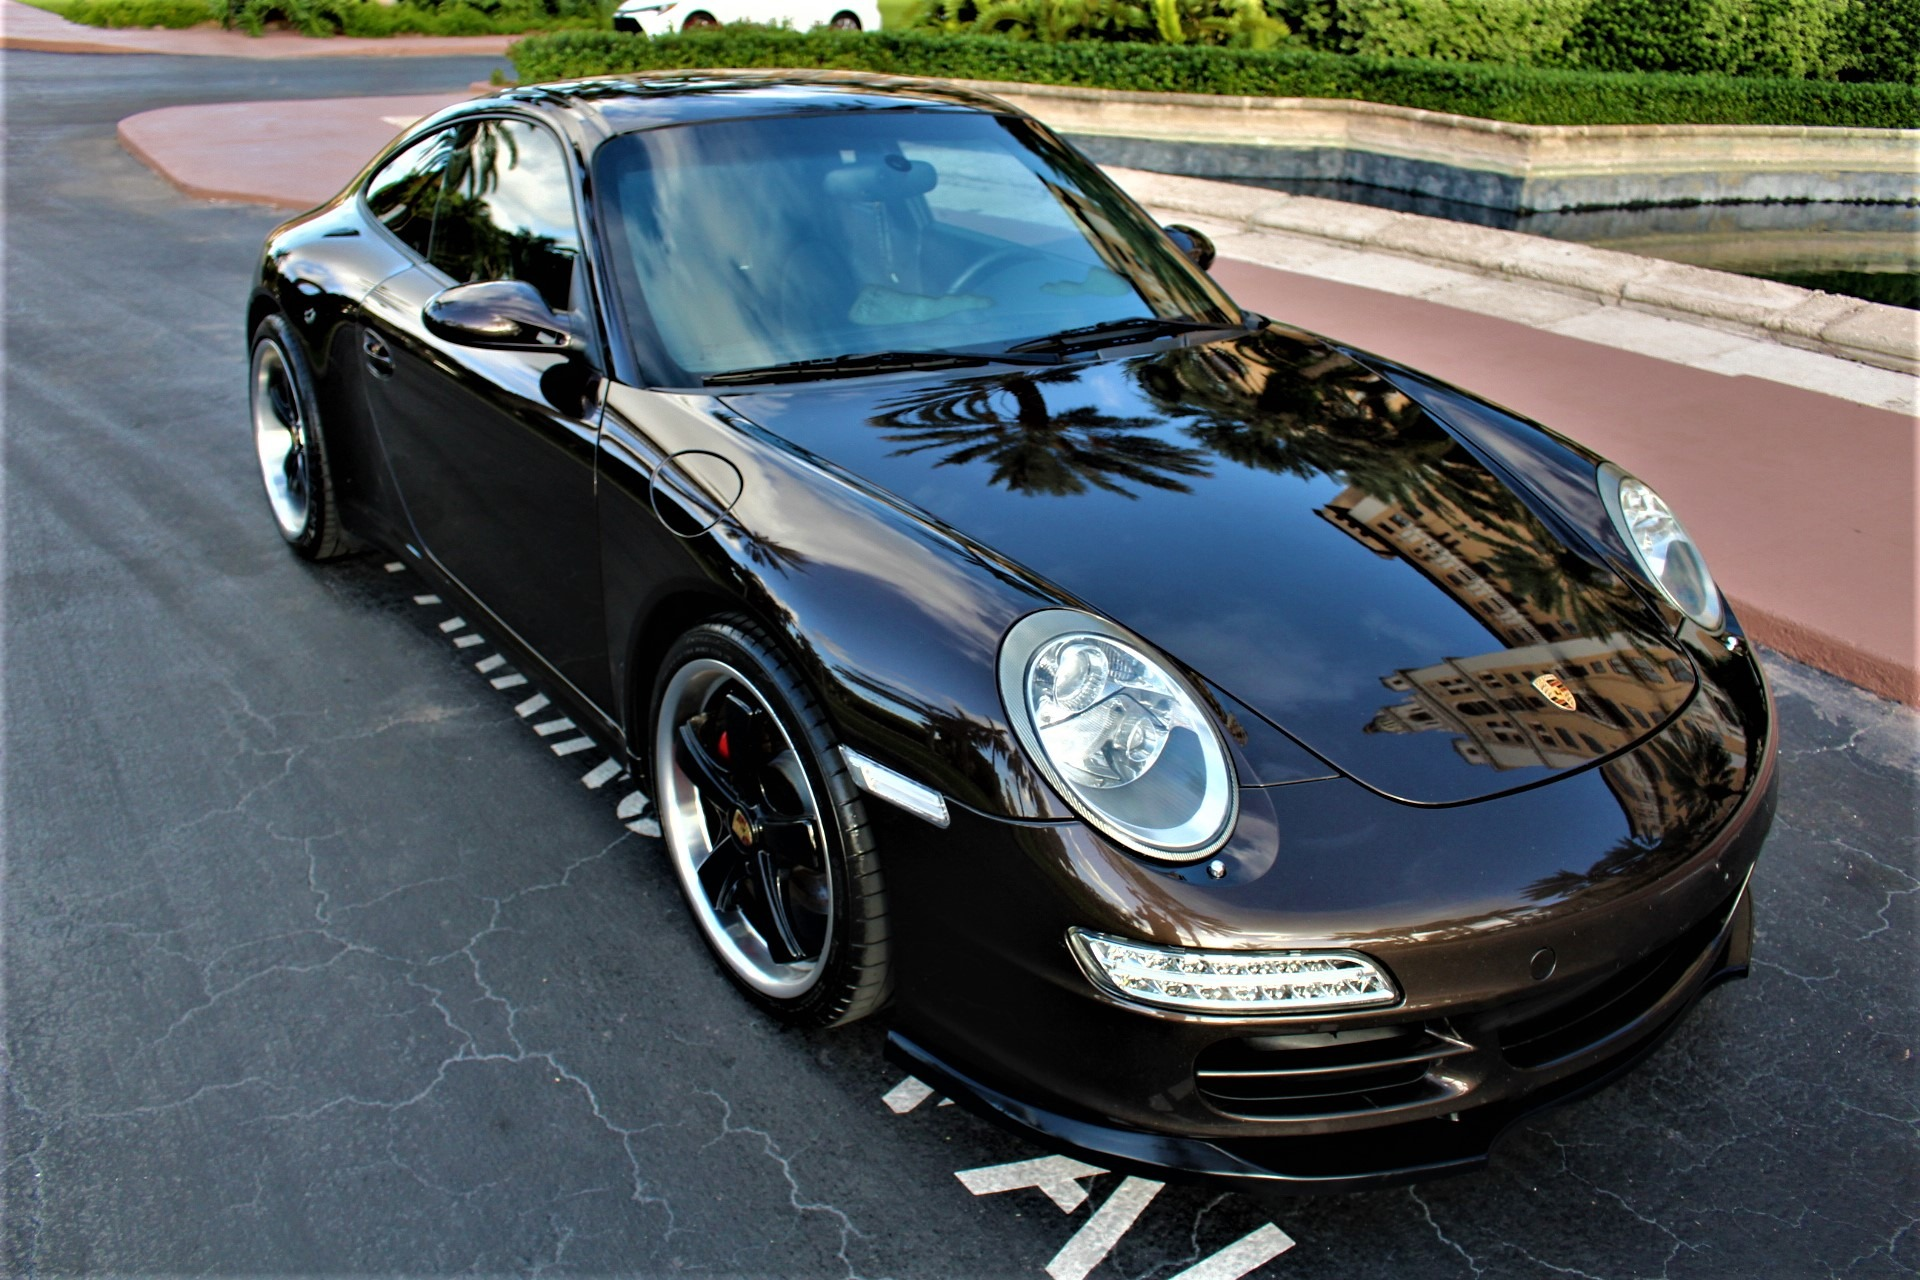 Used 2008 Porsche 911 Carrera S for sale Sold at The Gables Sports Cars in Miami FL 33146 4